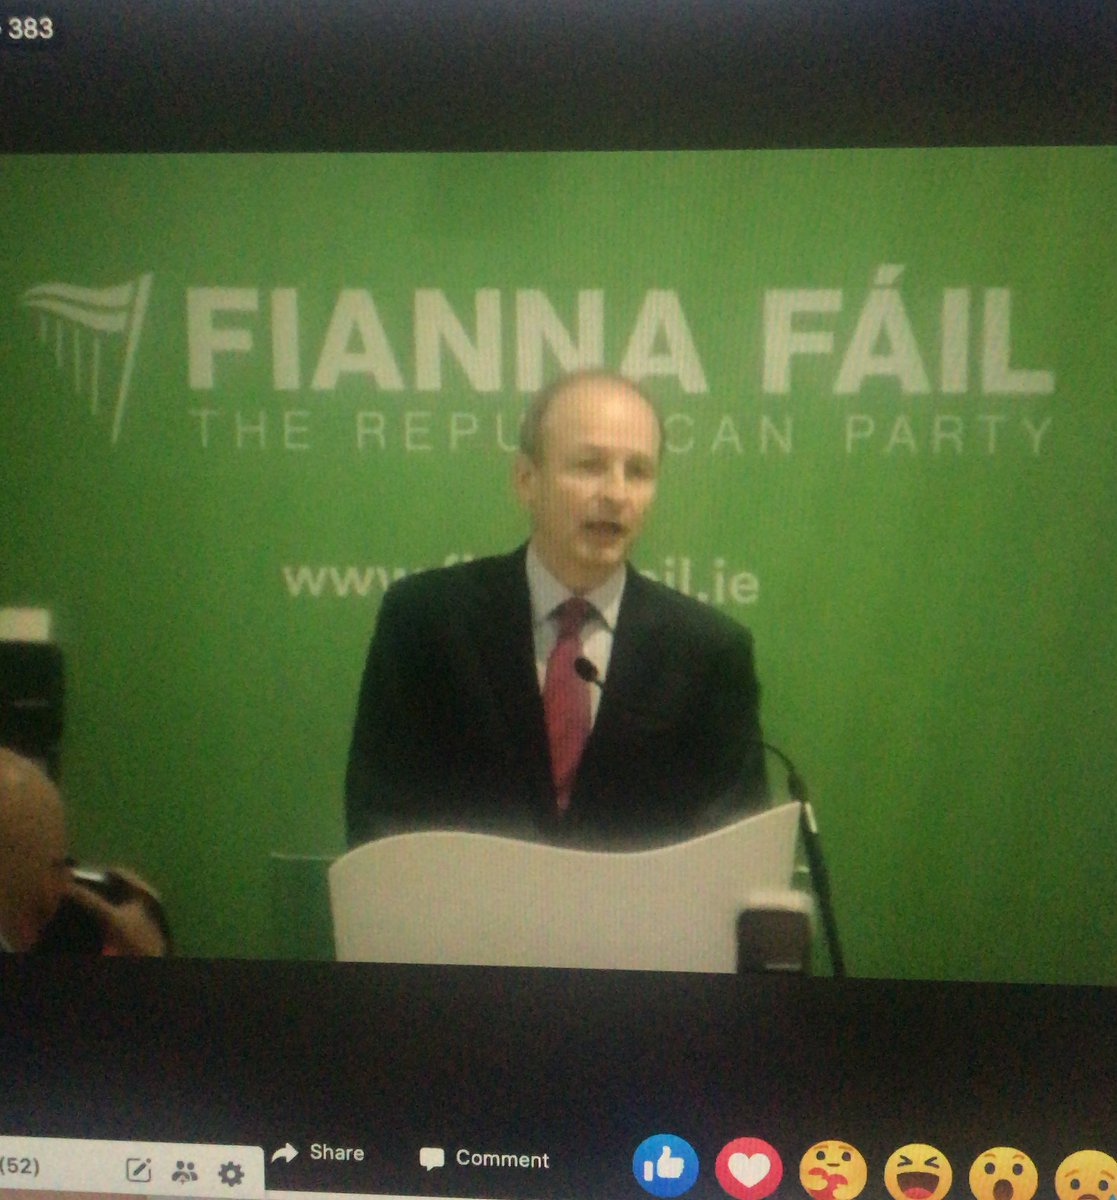 .@MichealMartinTD describes this postal vote as historic and what followed was an energetic debate.